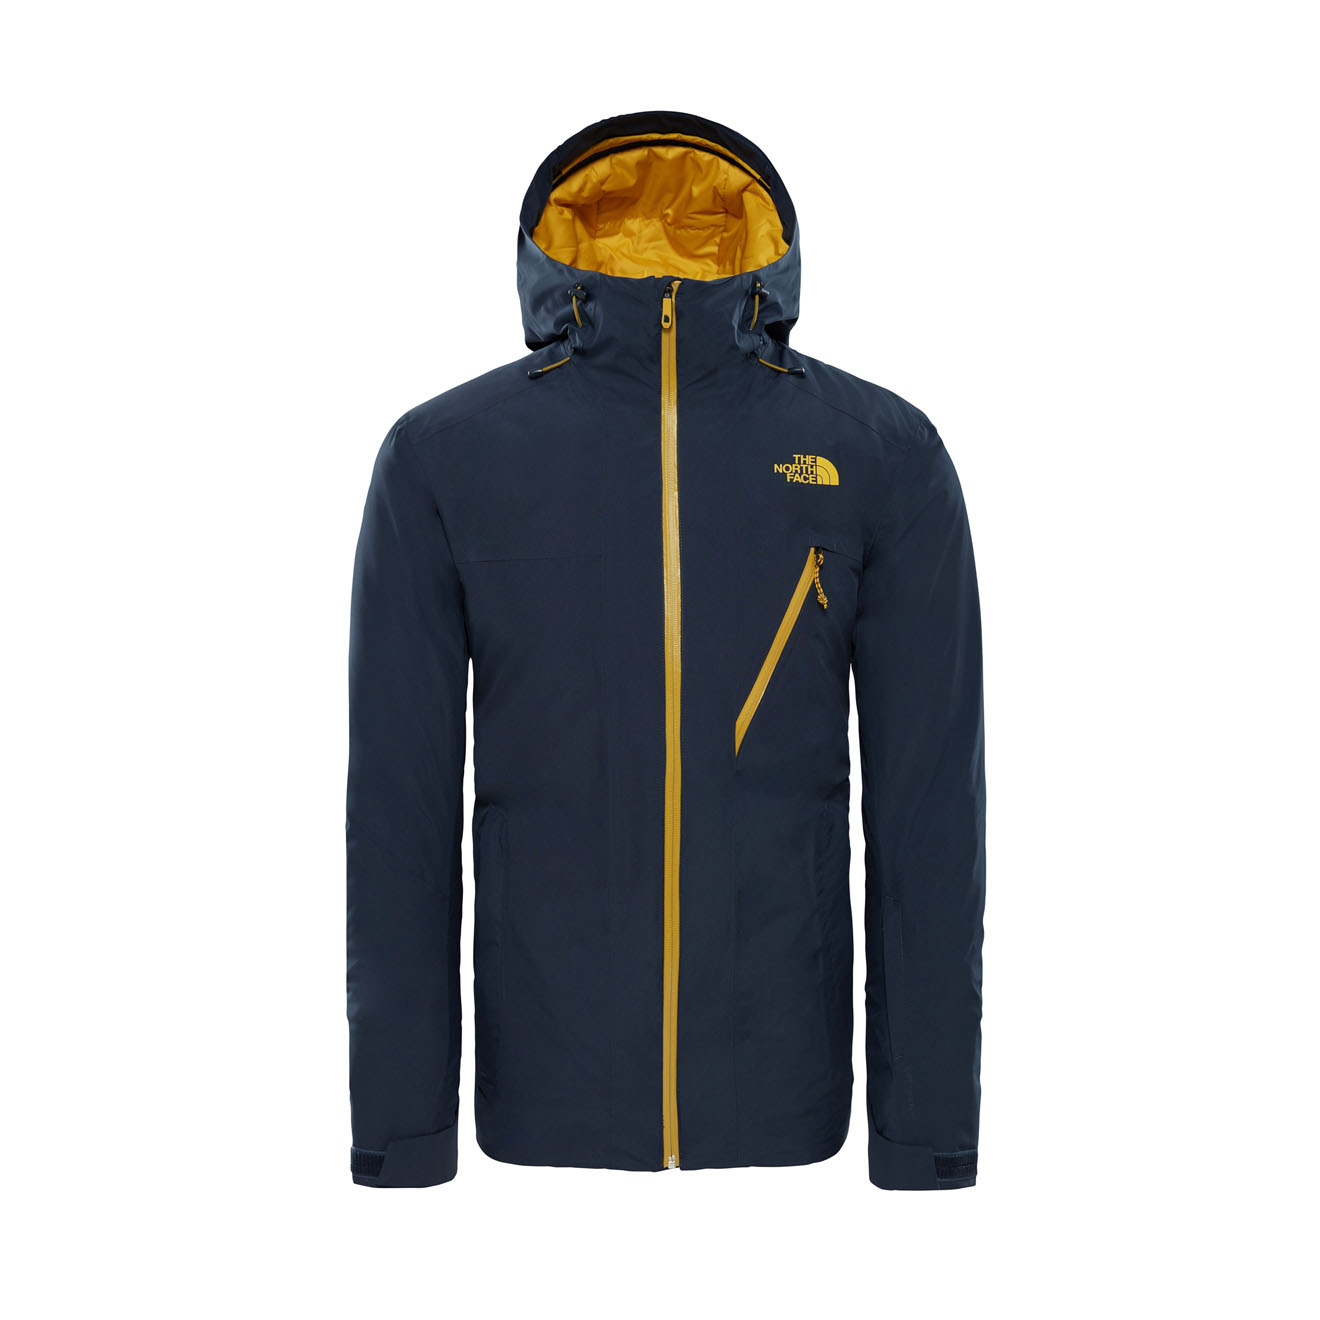 5. THE NORTH FACE